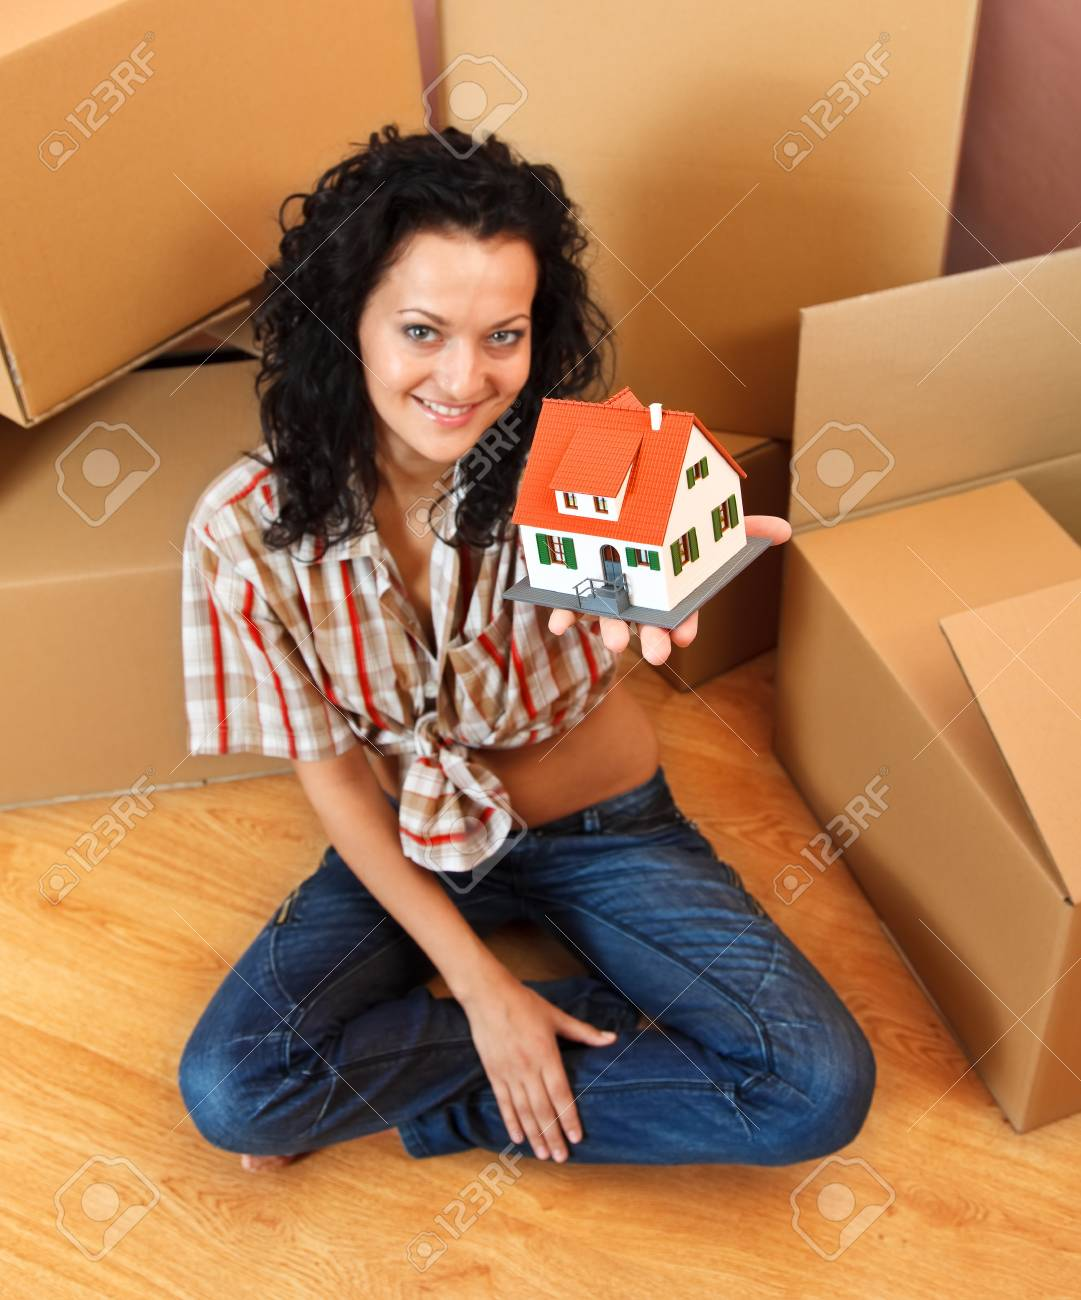 Attractive young woman offering a miniature house, boxes in the background Stock Photo - 9493721